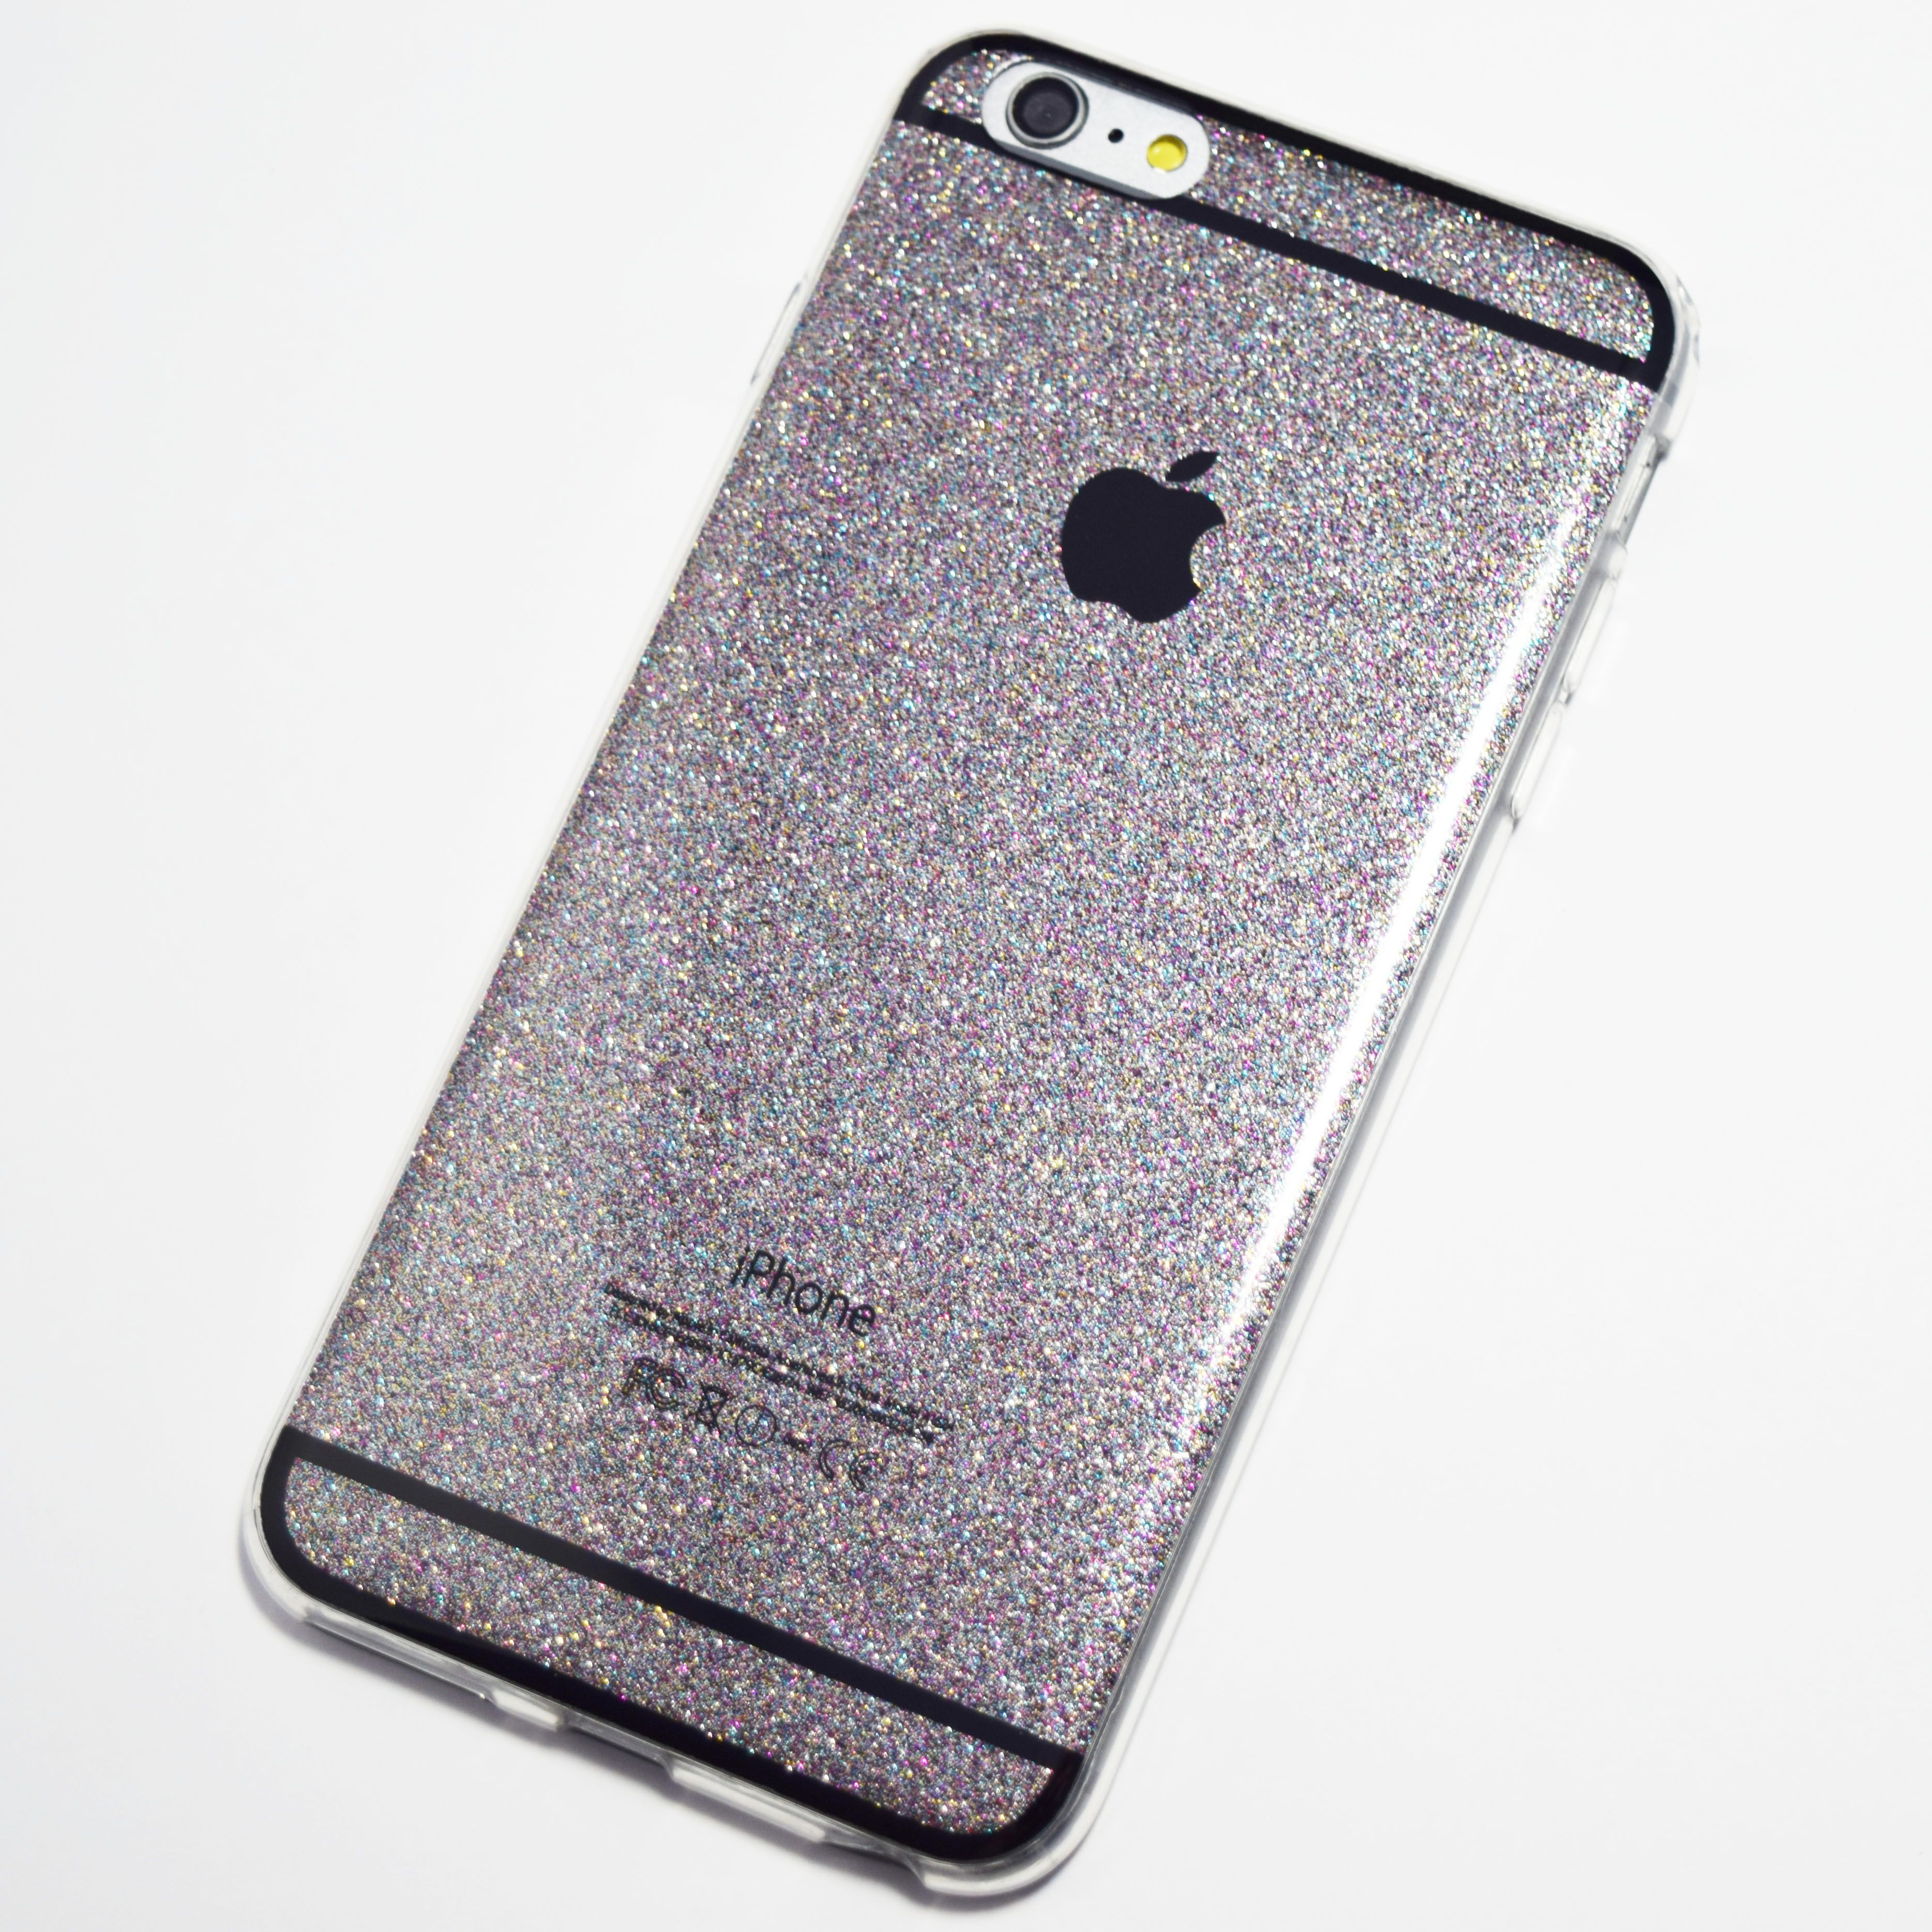 space grey glitter bling iphone 6 plus 6s plus soft case iphone 6 plus 6s plus cases. Black Bedroom Furniture Sets. Home Design Ideas